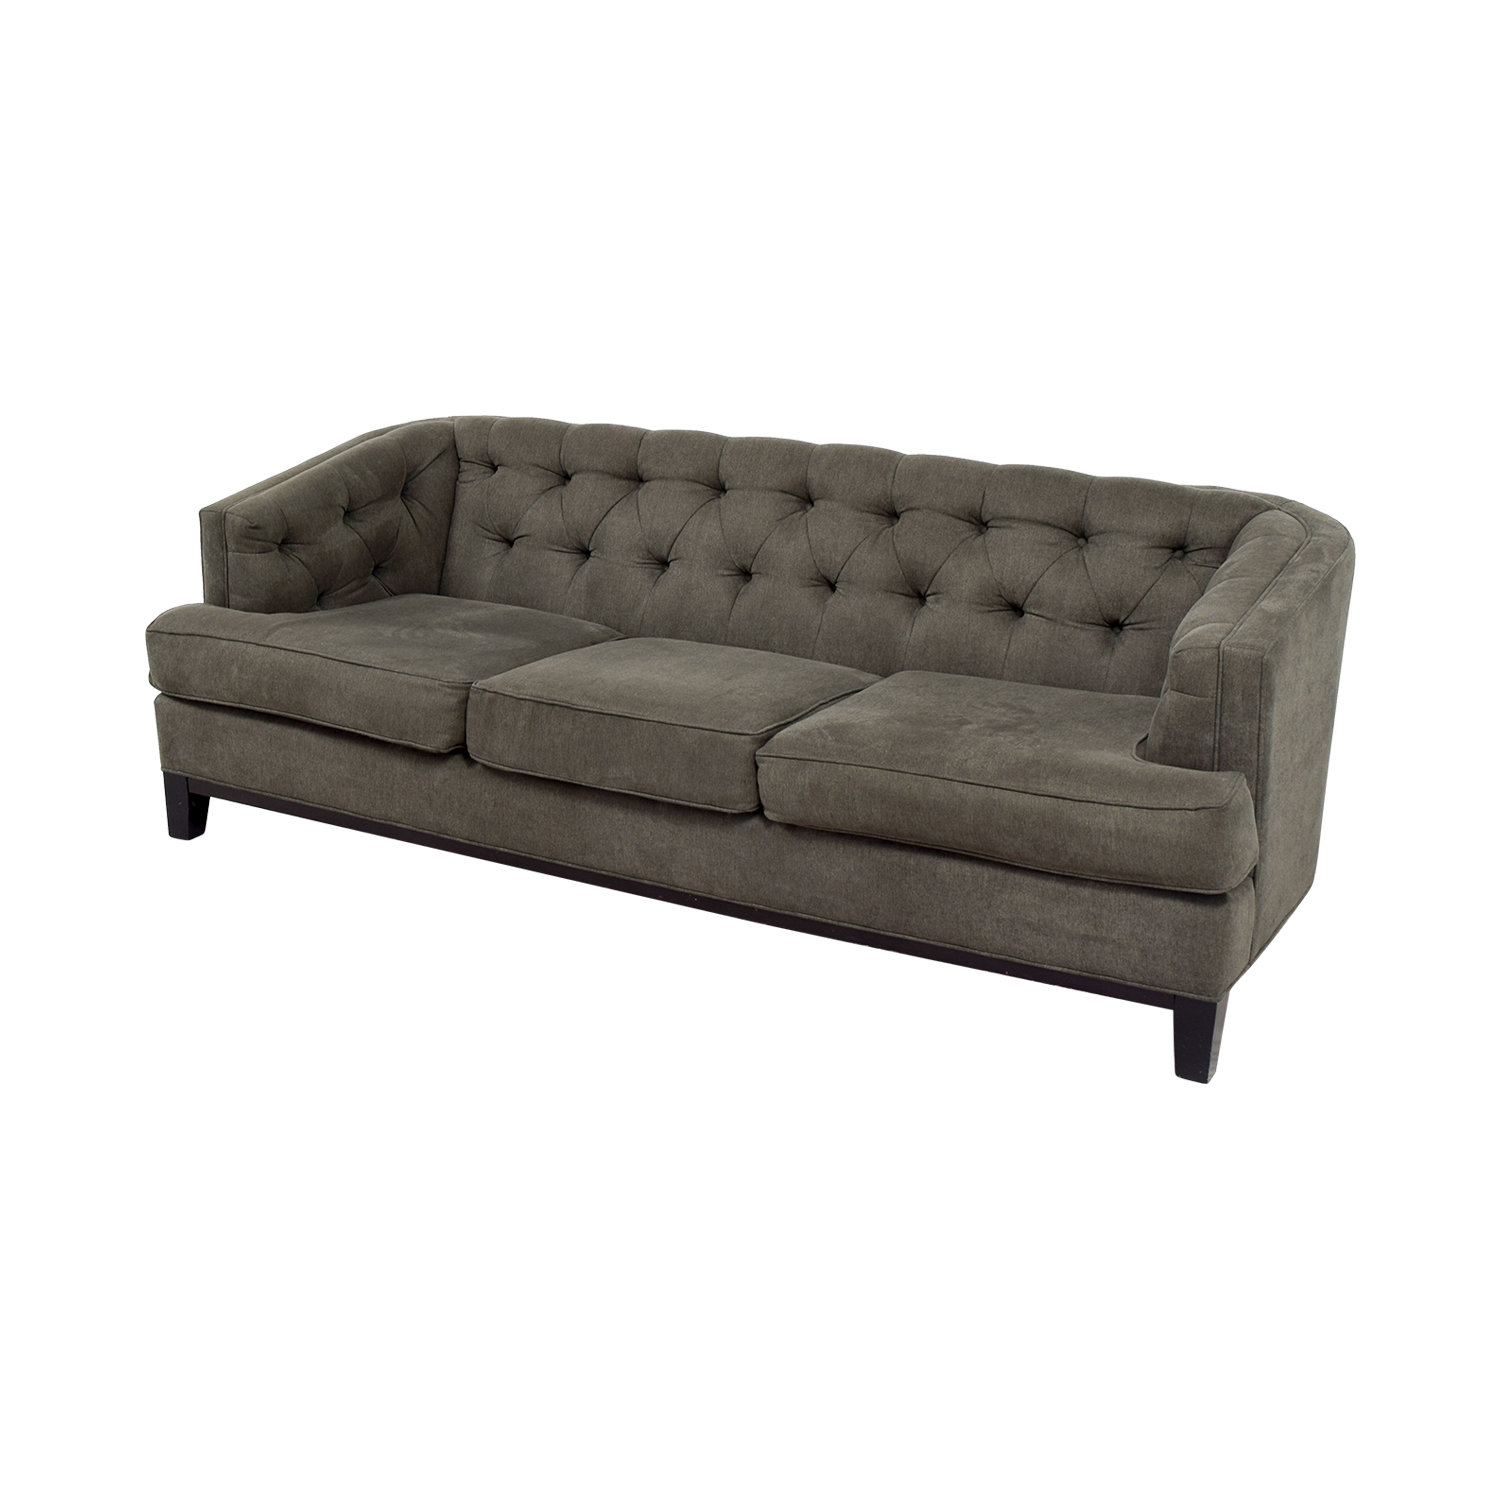 73 off rooms to go rooms to go tufted sofa sofas. Black Bedroom Furniture Sets. Home Design Ideas